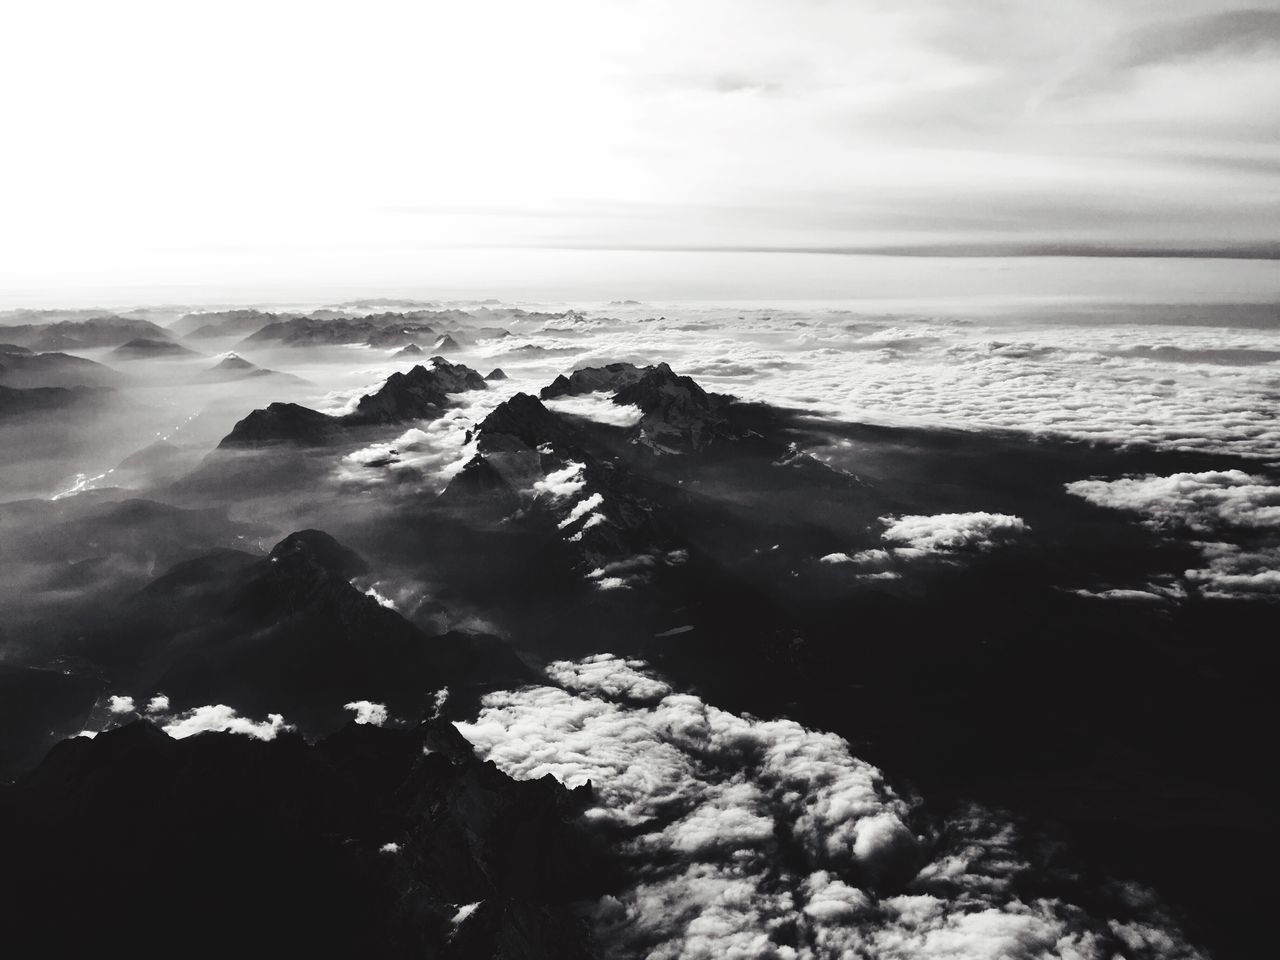 Sea Of Mountains Beauty In Nature Tranquility Sky No People View From Above Clouds And Mountains Flowing Flying Over Clouds Alpes Blackandwhite IPhoneography BYOPaper!